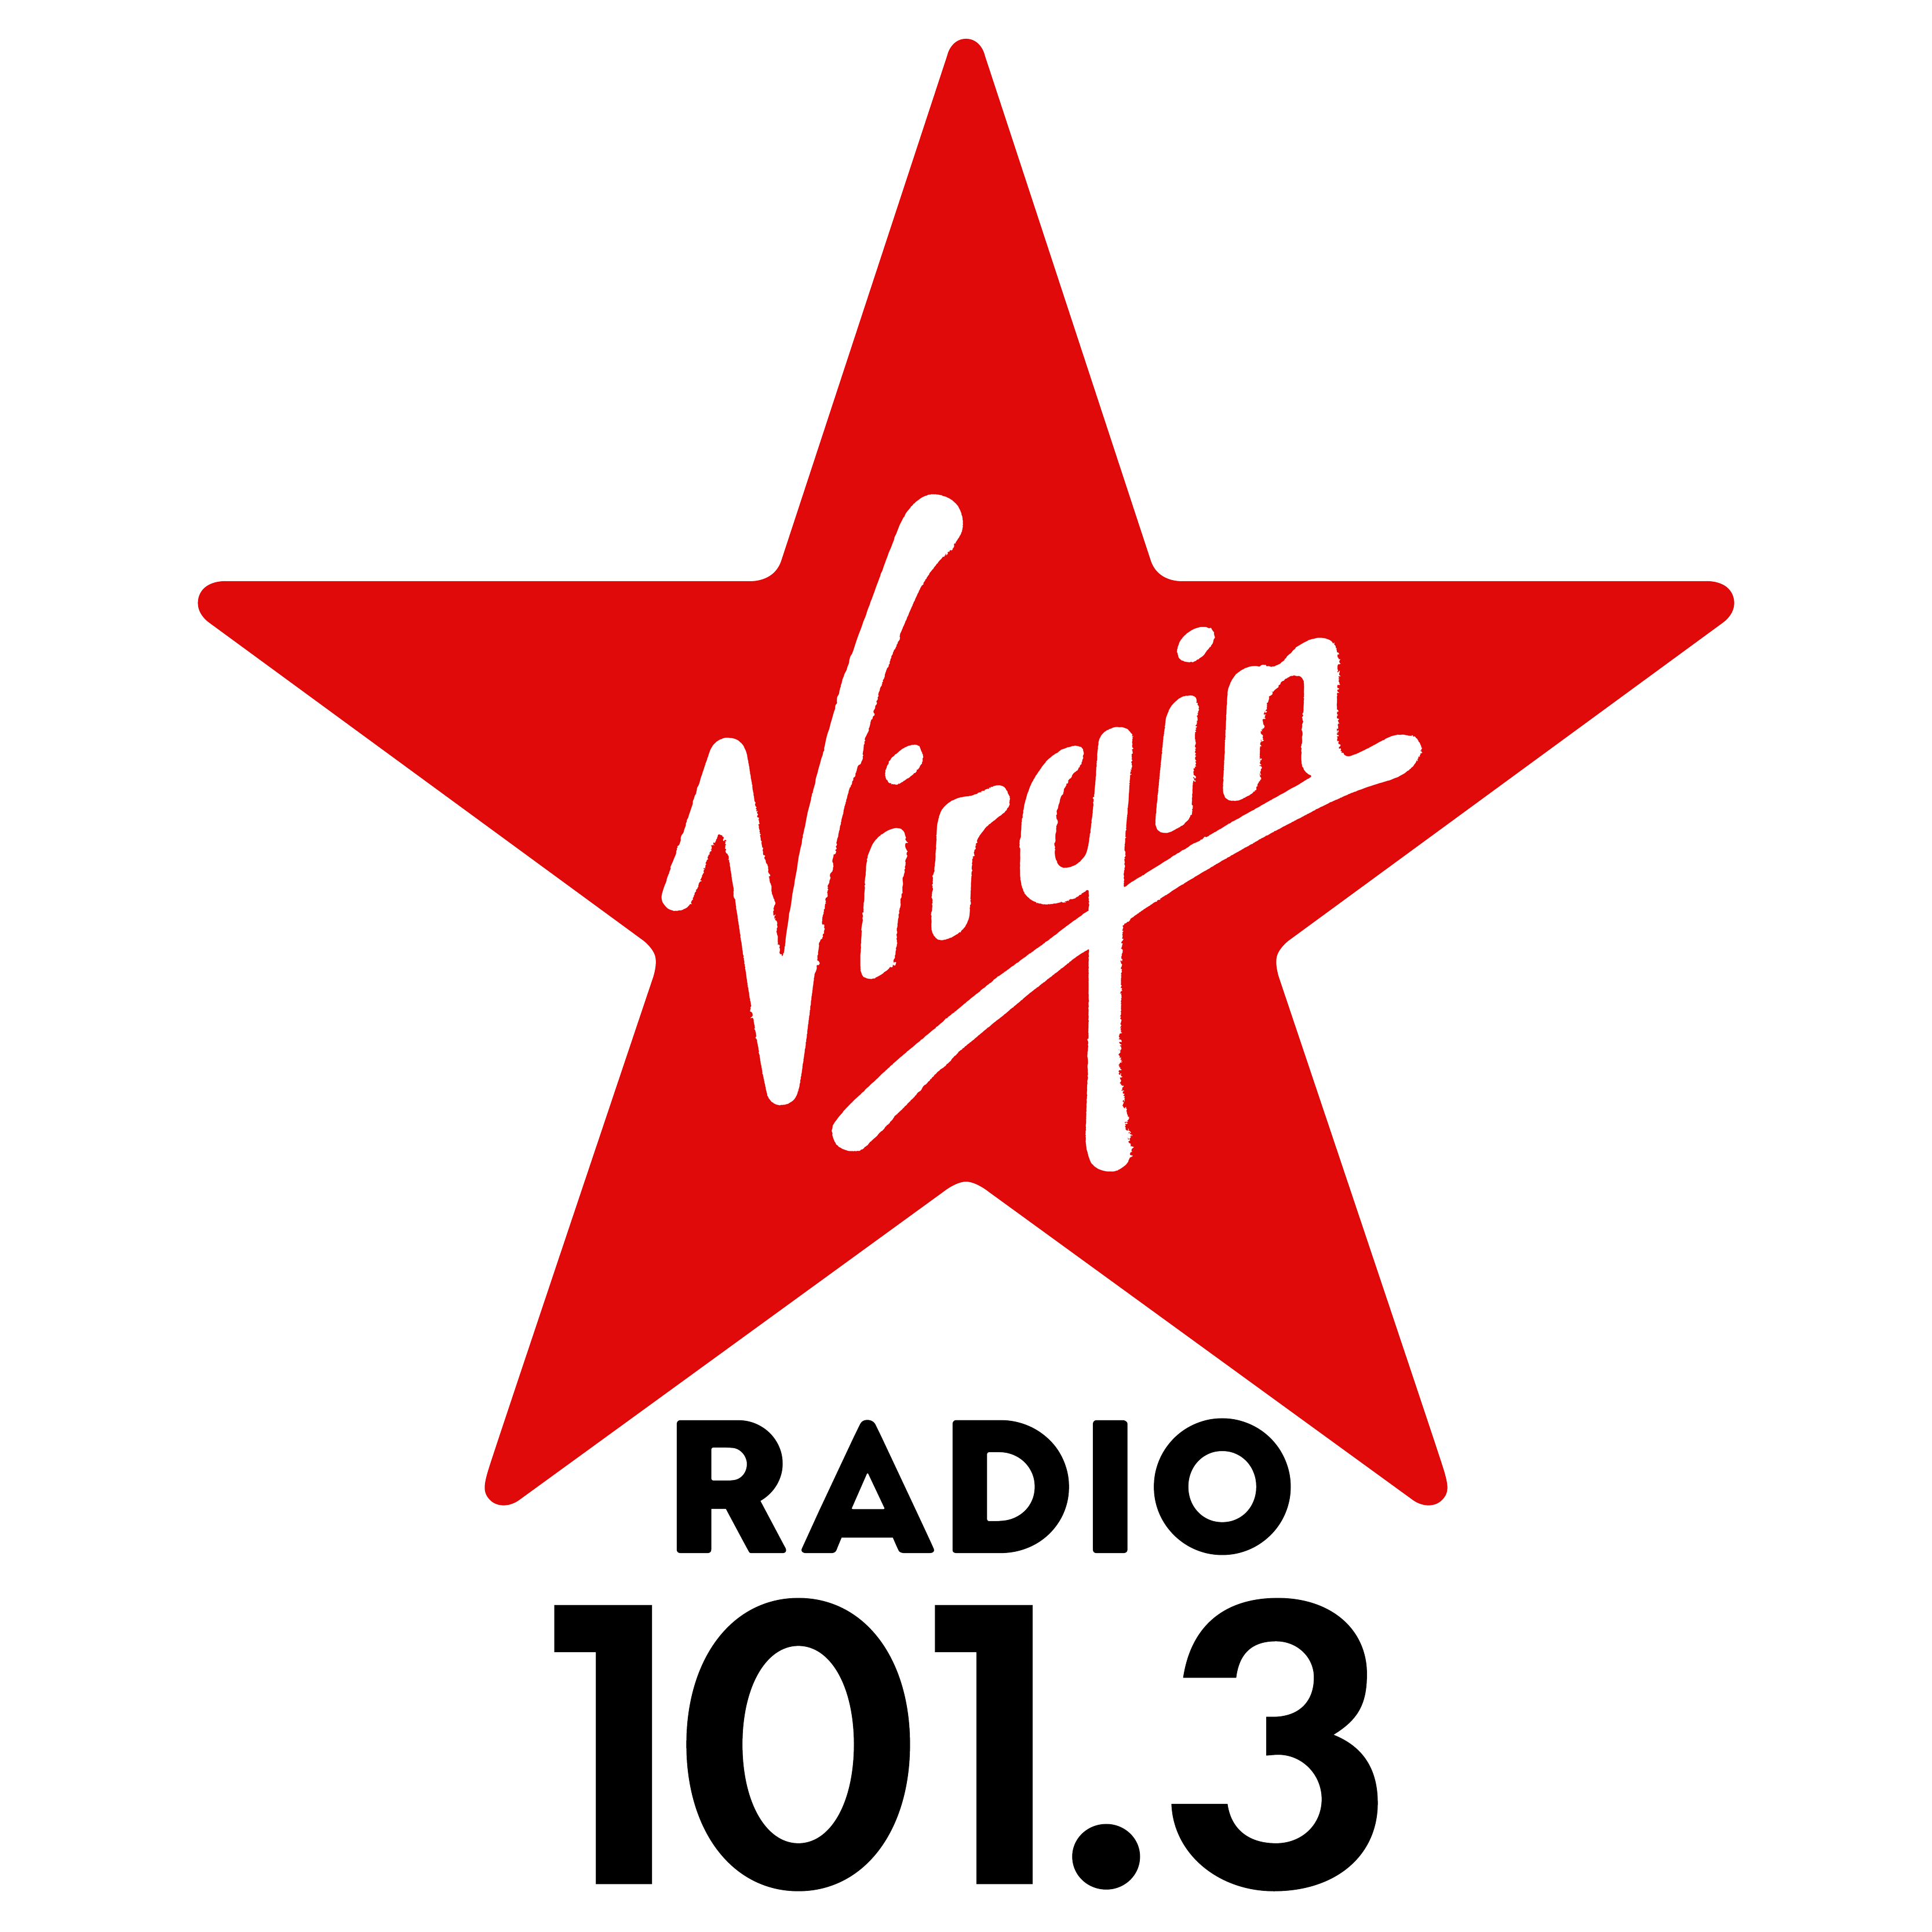 Virgin Radio 101.3 logo